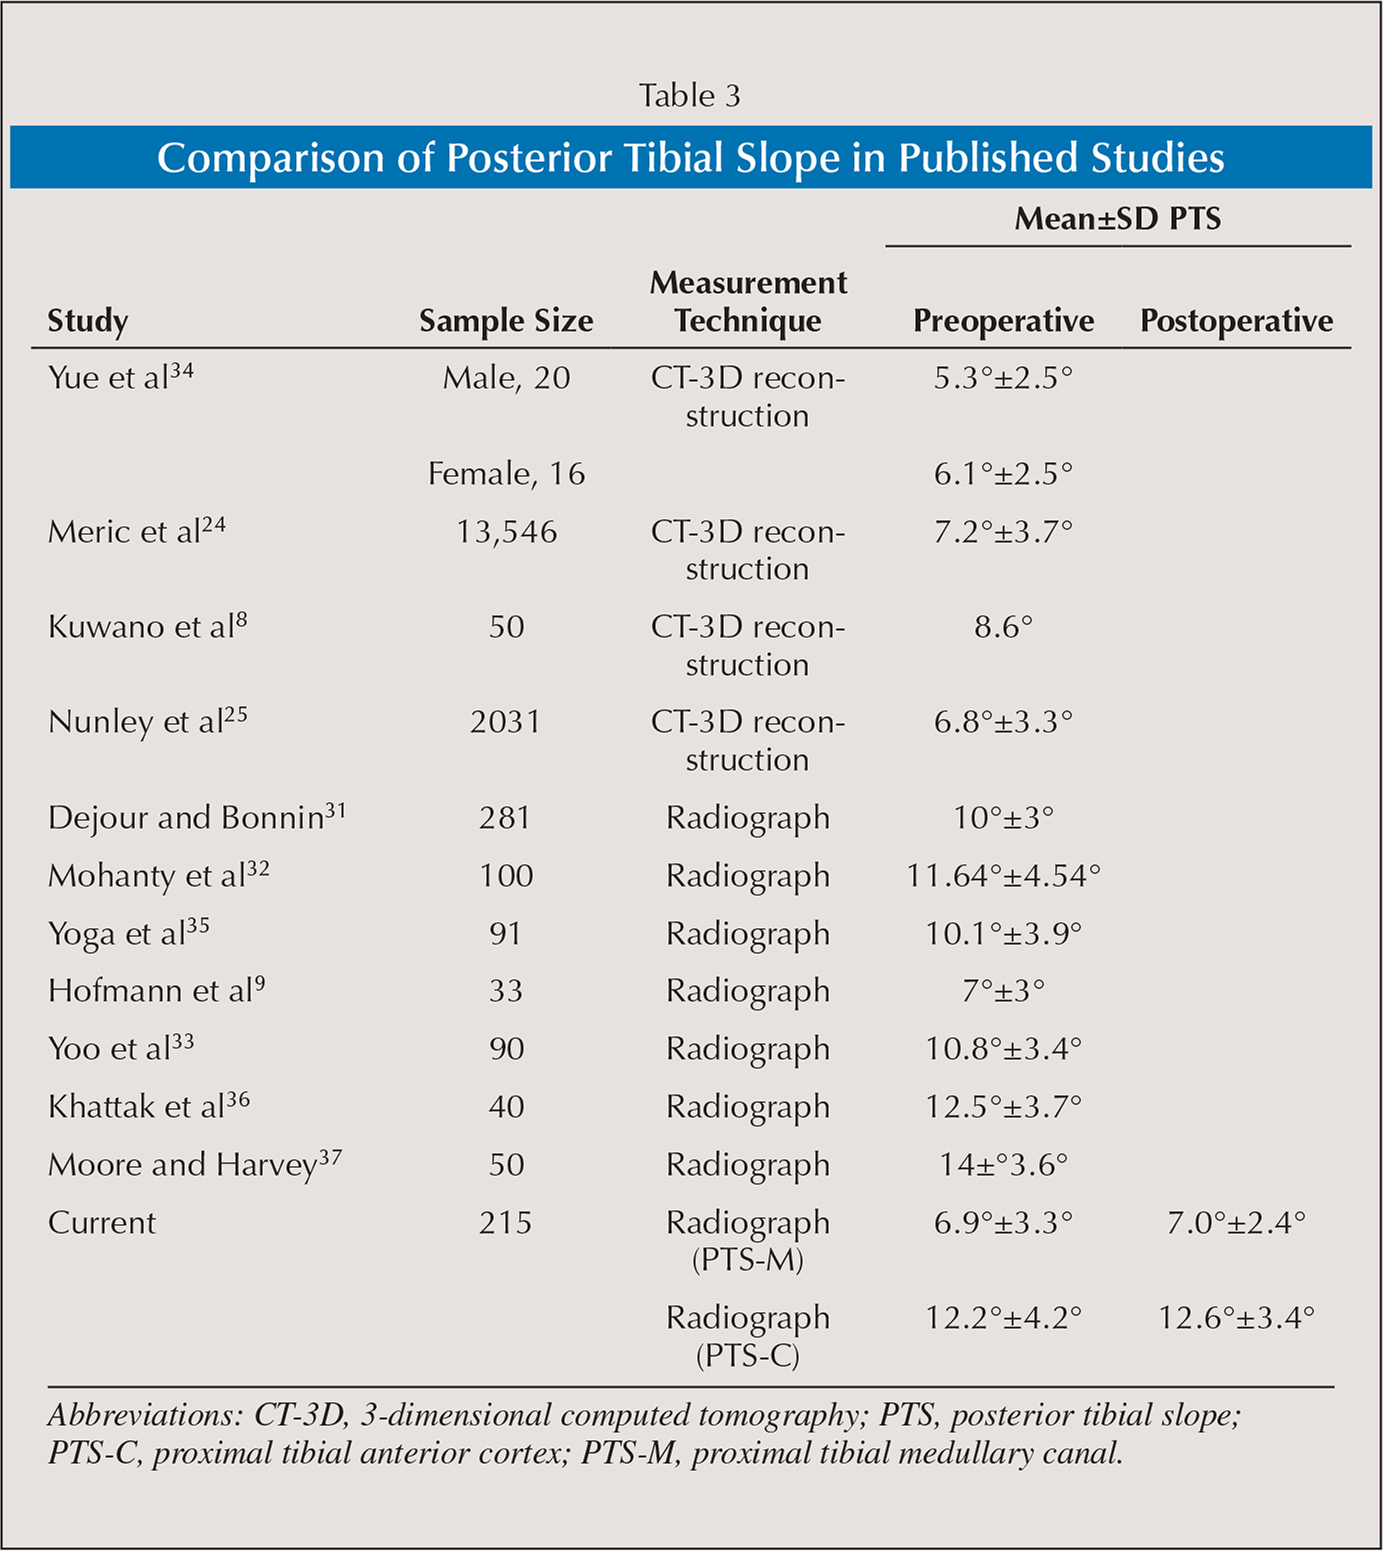 Comparison of Posterior Tibial Slope in Published Studies